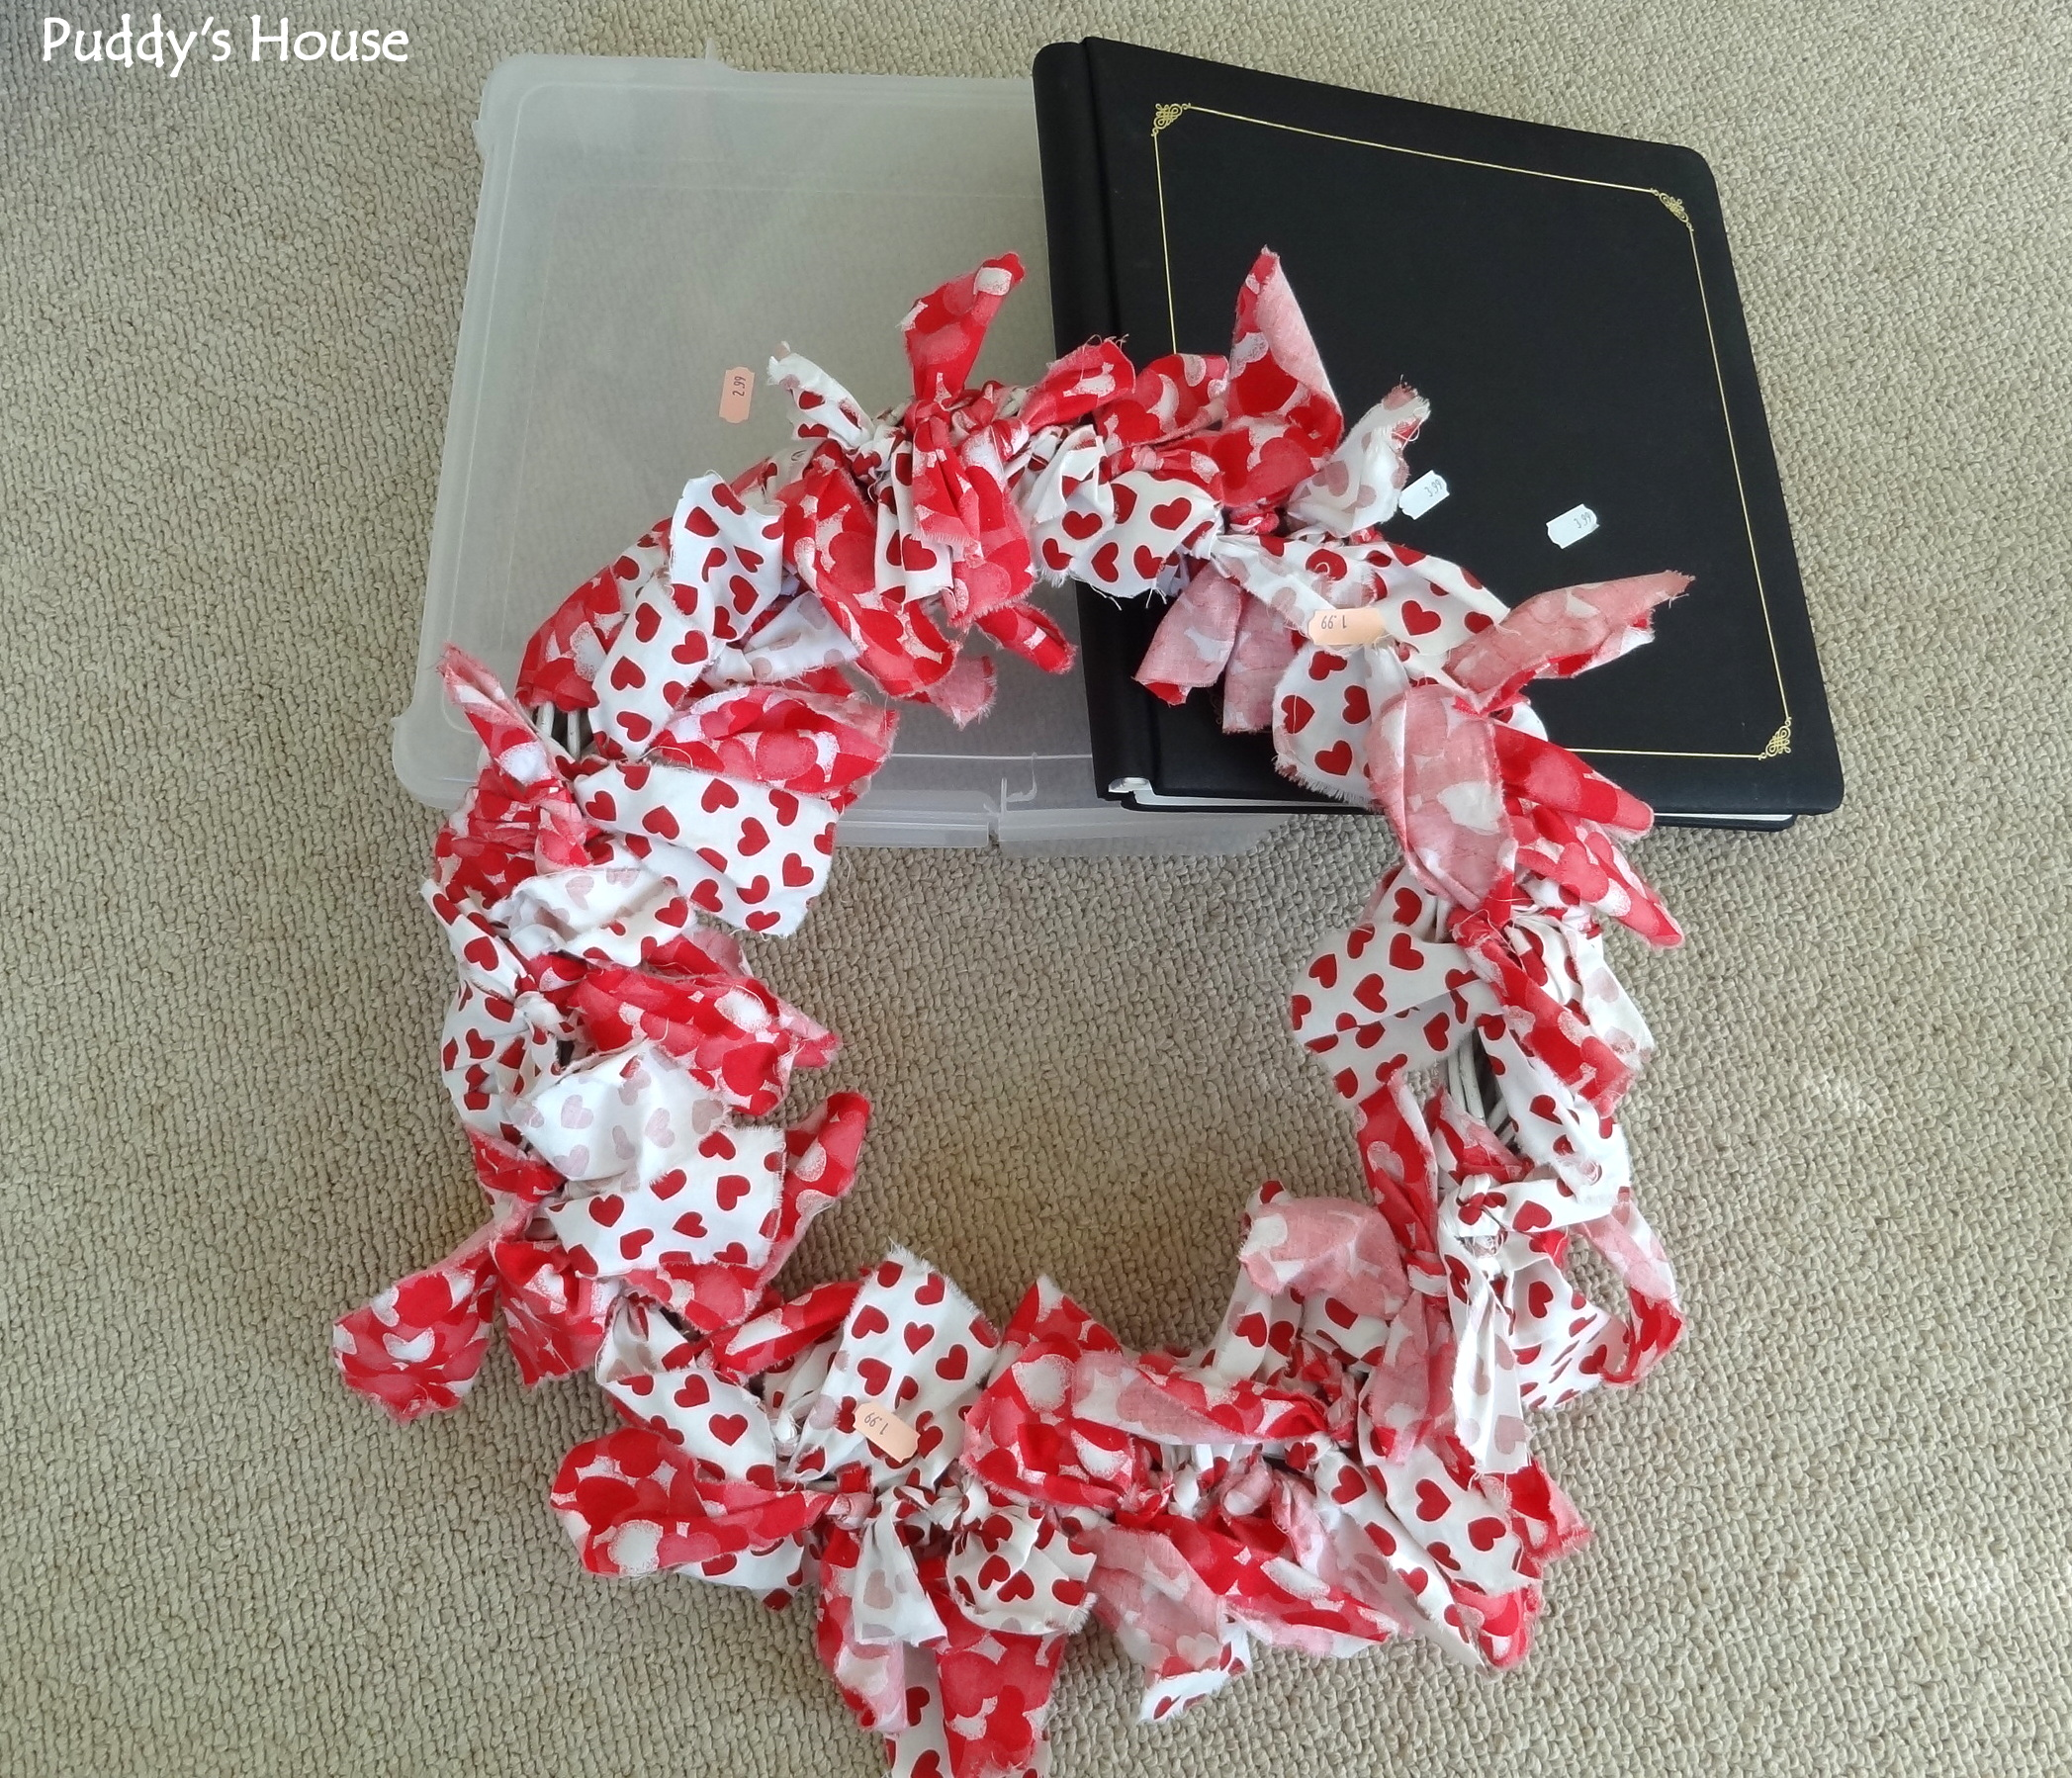 Thrift Shopping - scrapbook - paper holder  and wreath from salvation army